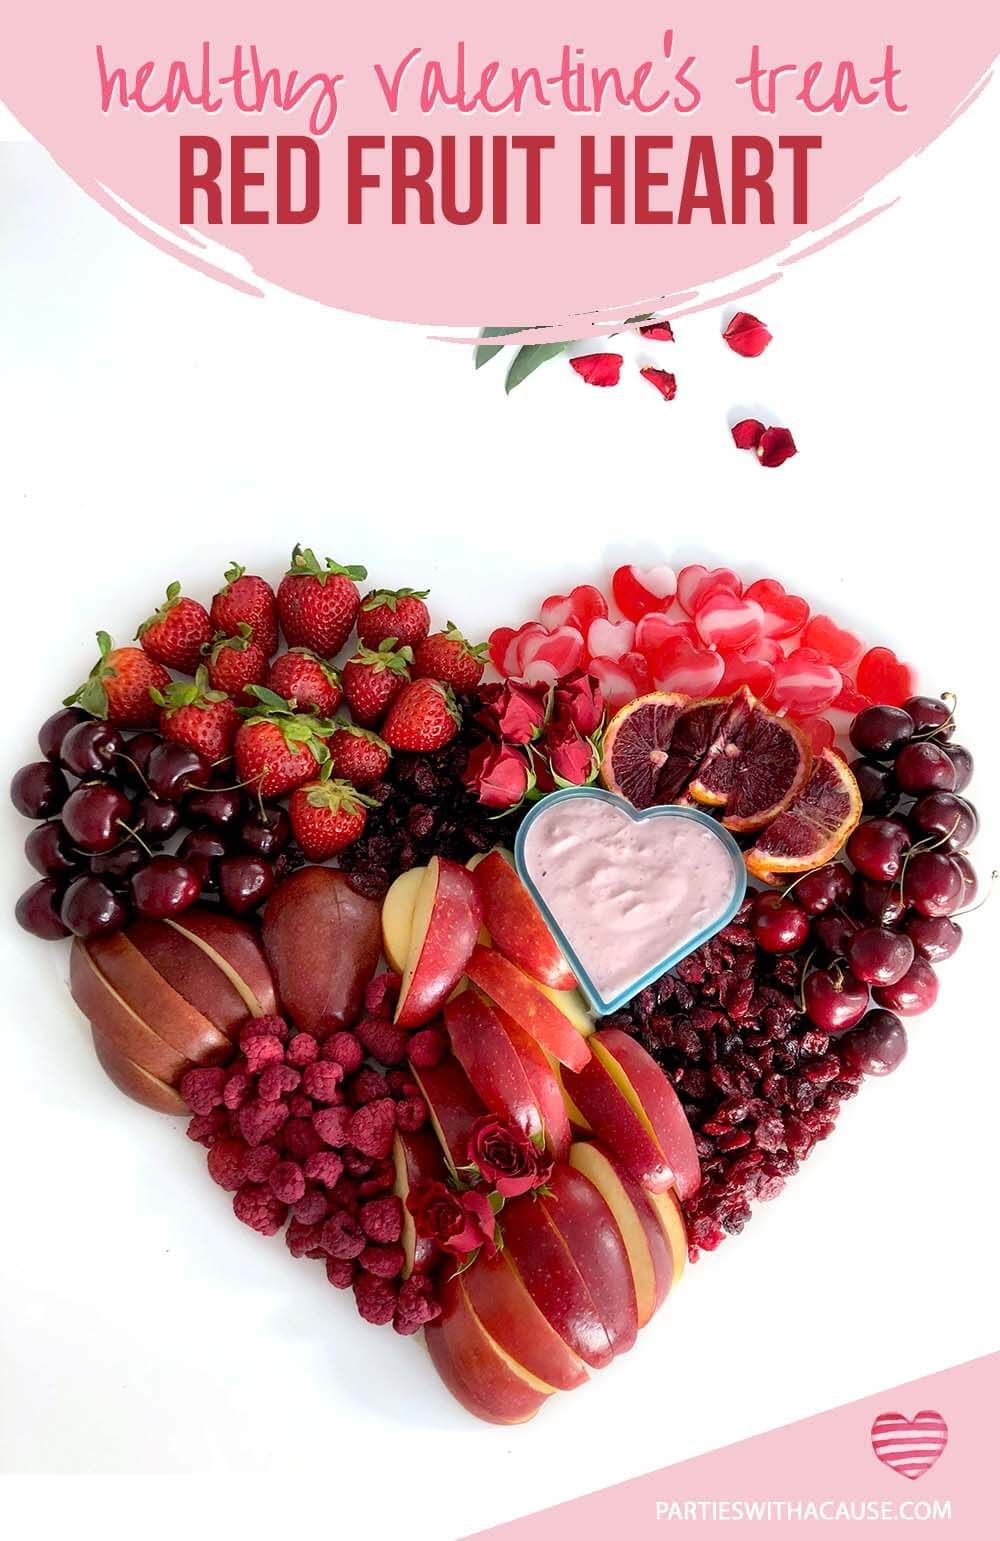 Lighten Up Your Valentine S Day Celebration With A Healthy Food Idea Like This Heart Made From All Red Fruits And A Li In 2021 Healthy Valentines Treats Red Food Food